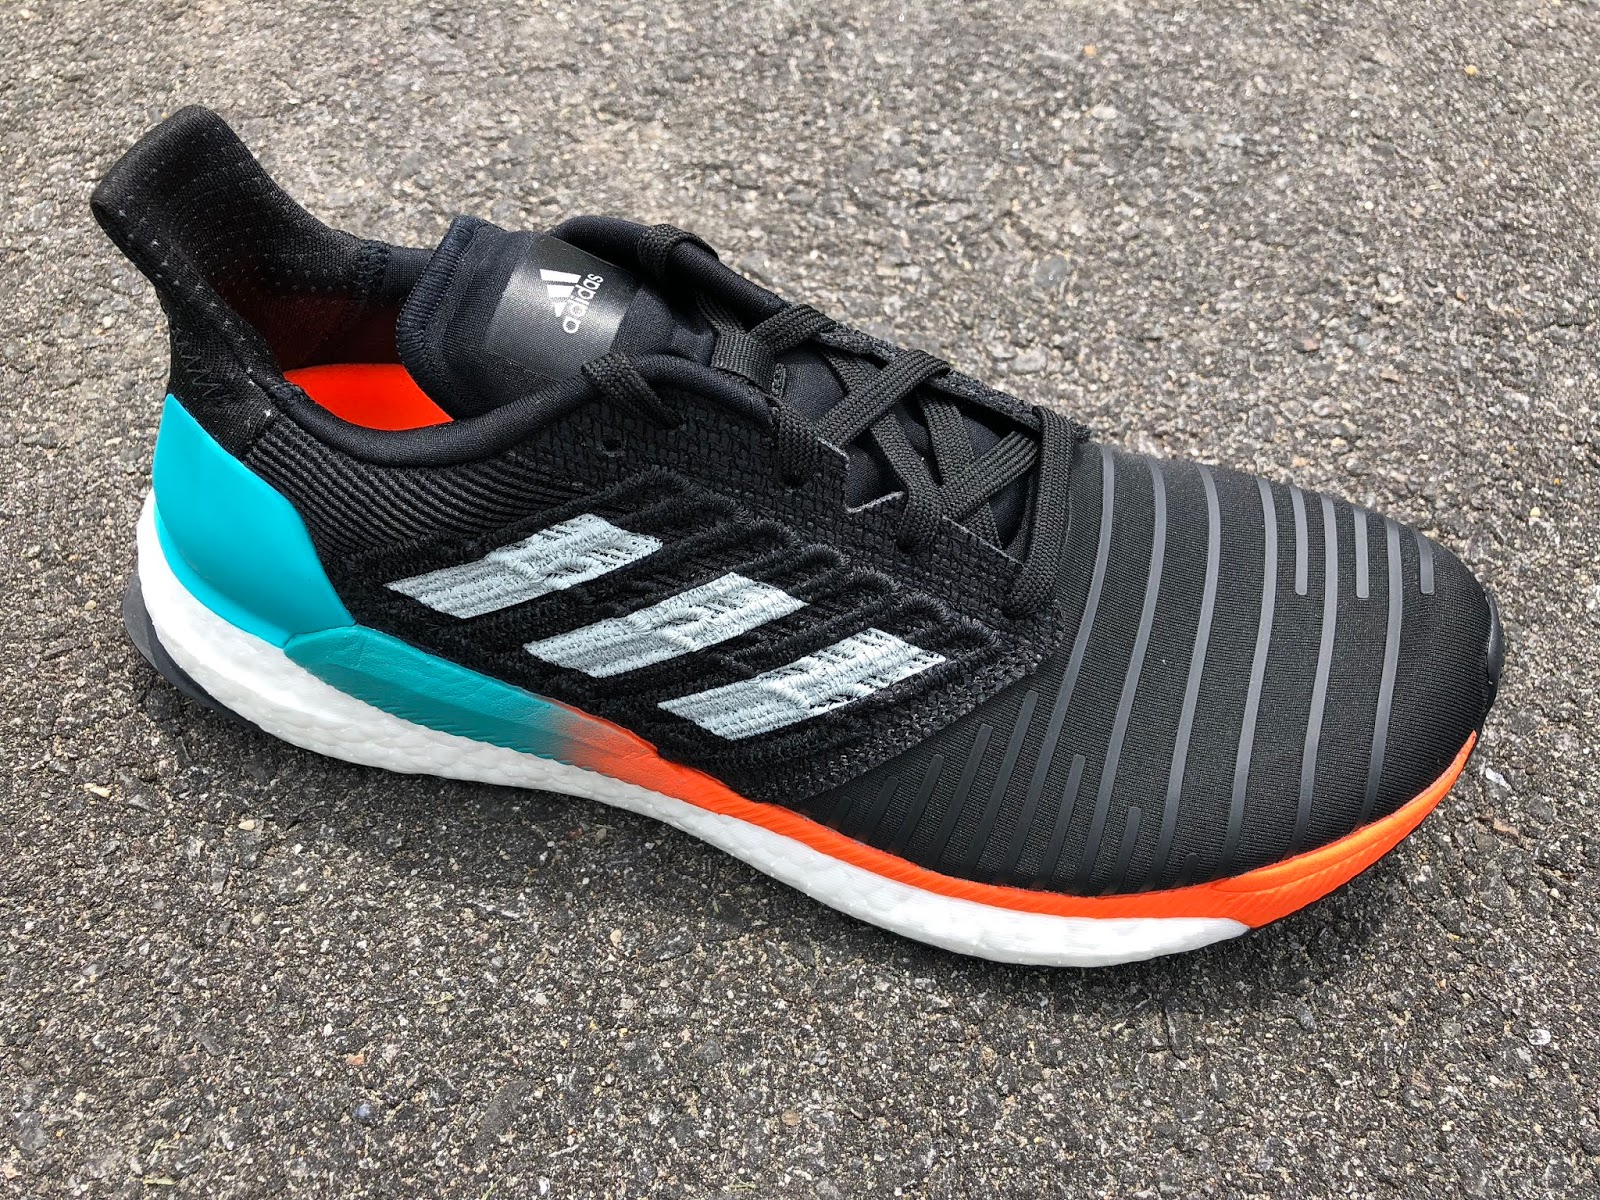 2e0f85ce0 adidas Solar Boost Initial Review  Splashy Tropical Vibe. Lively yet Mellow  Ride